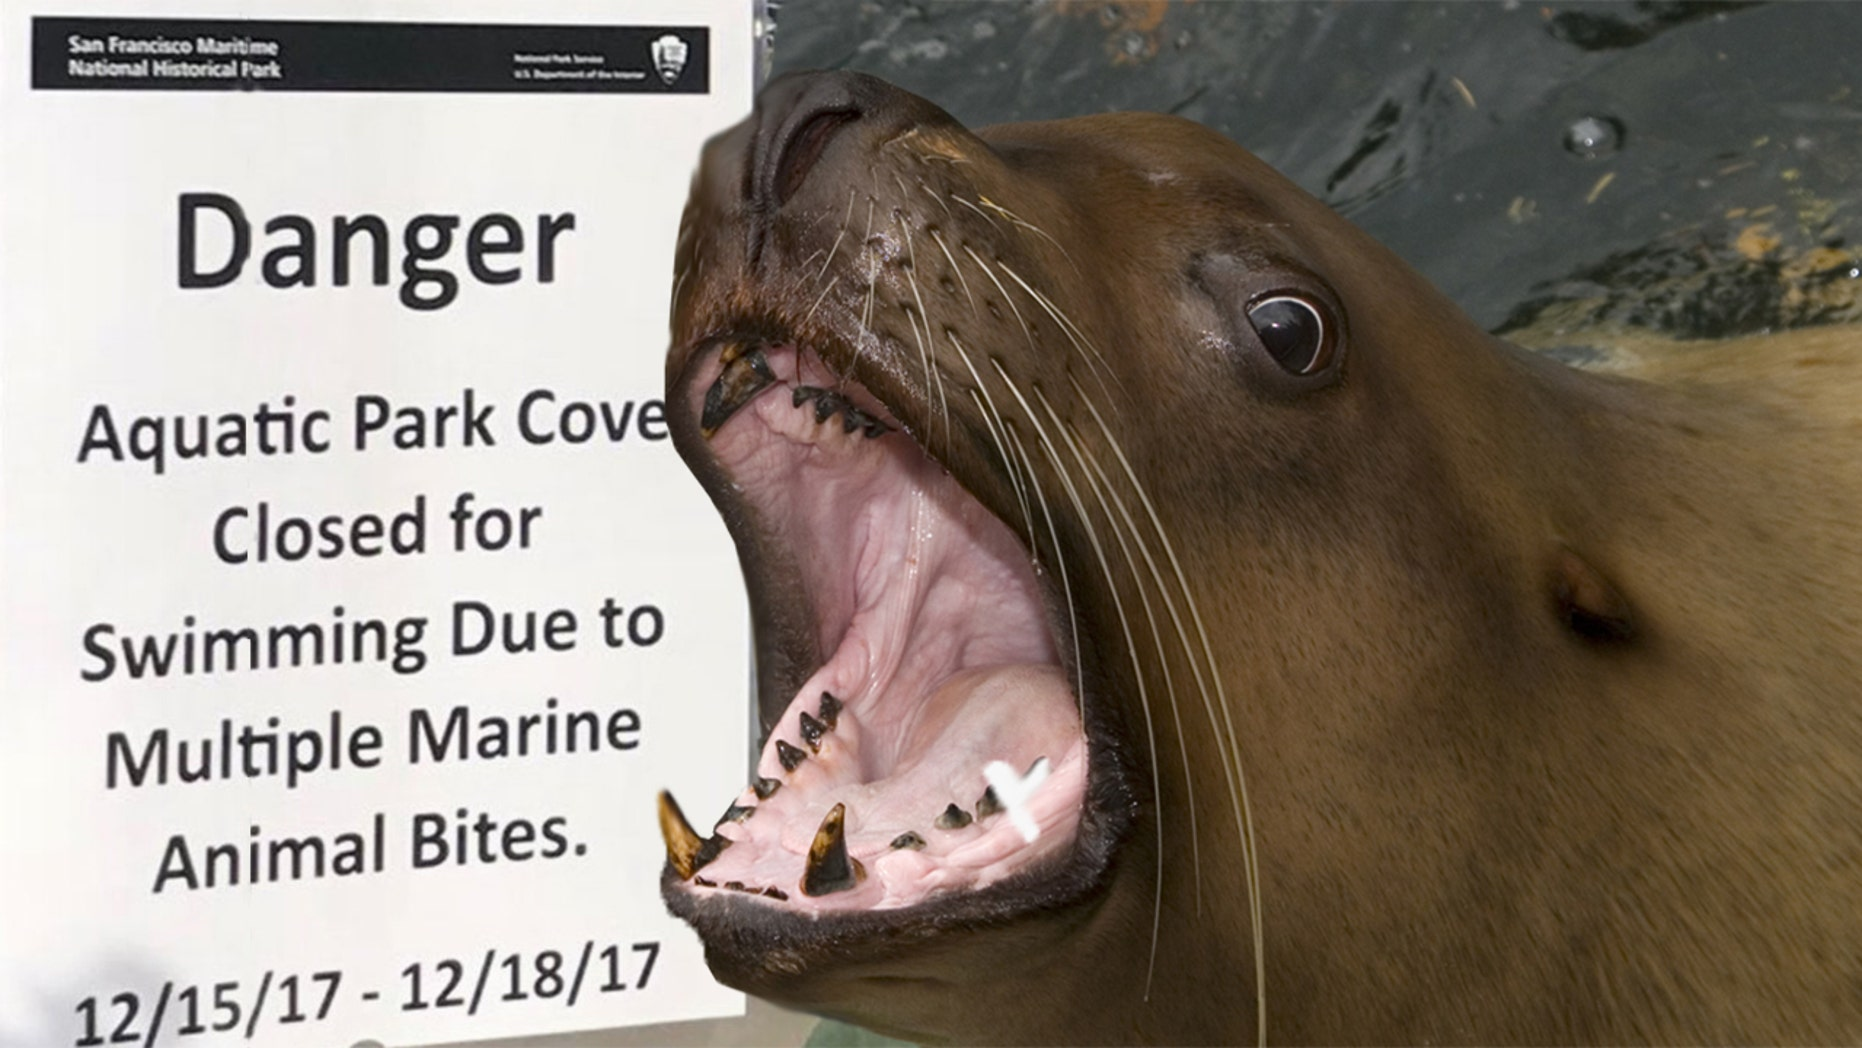 A woman has become the third person to be attacked by sea lions at Aquatic Park Cove, a popular spot for swimming near Fisherman's Wharf.